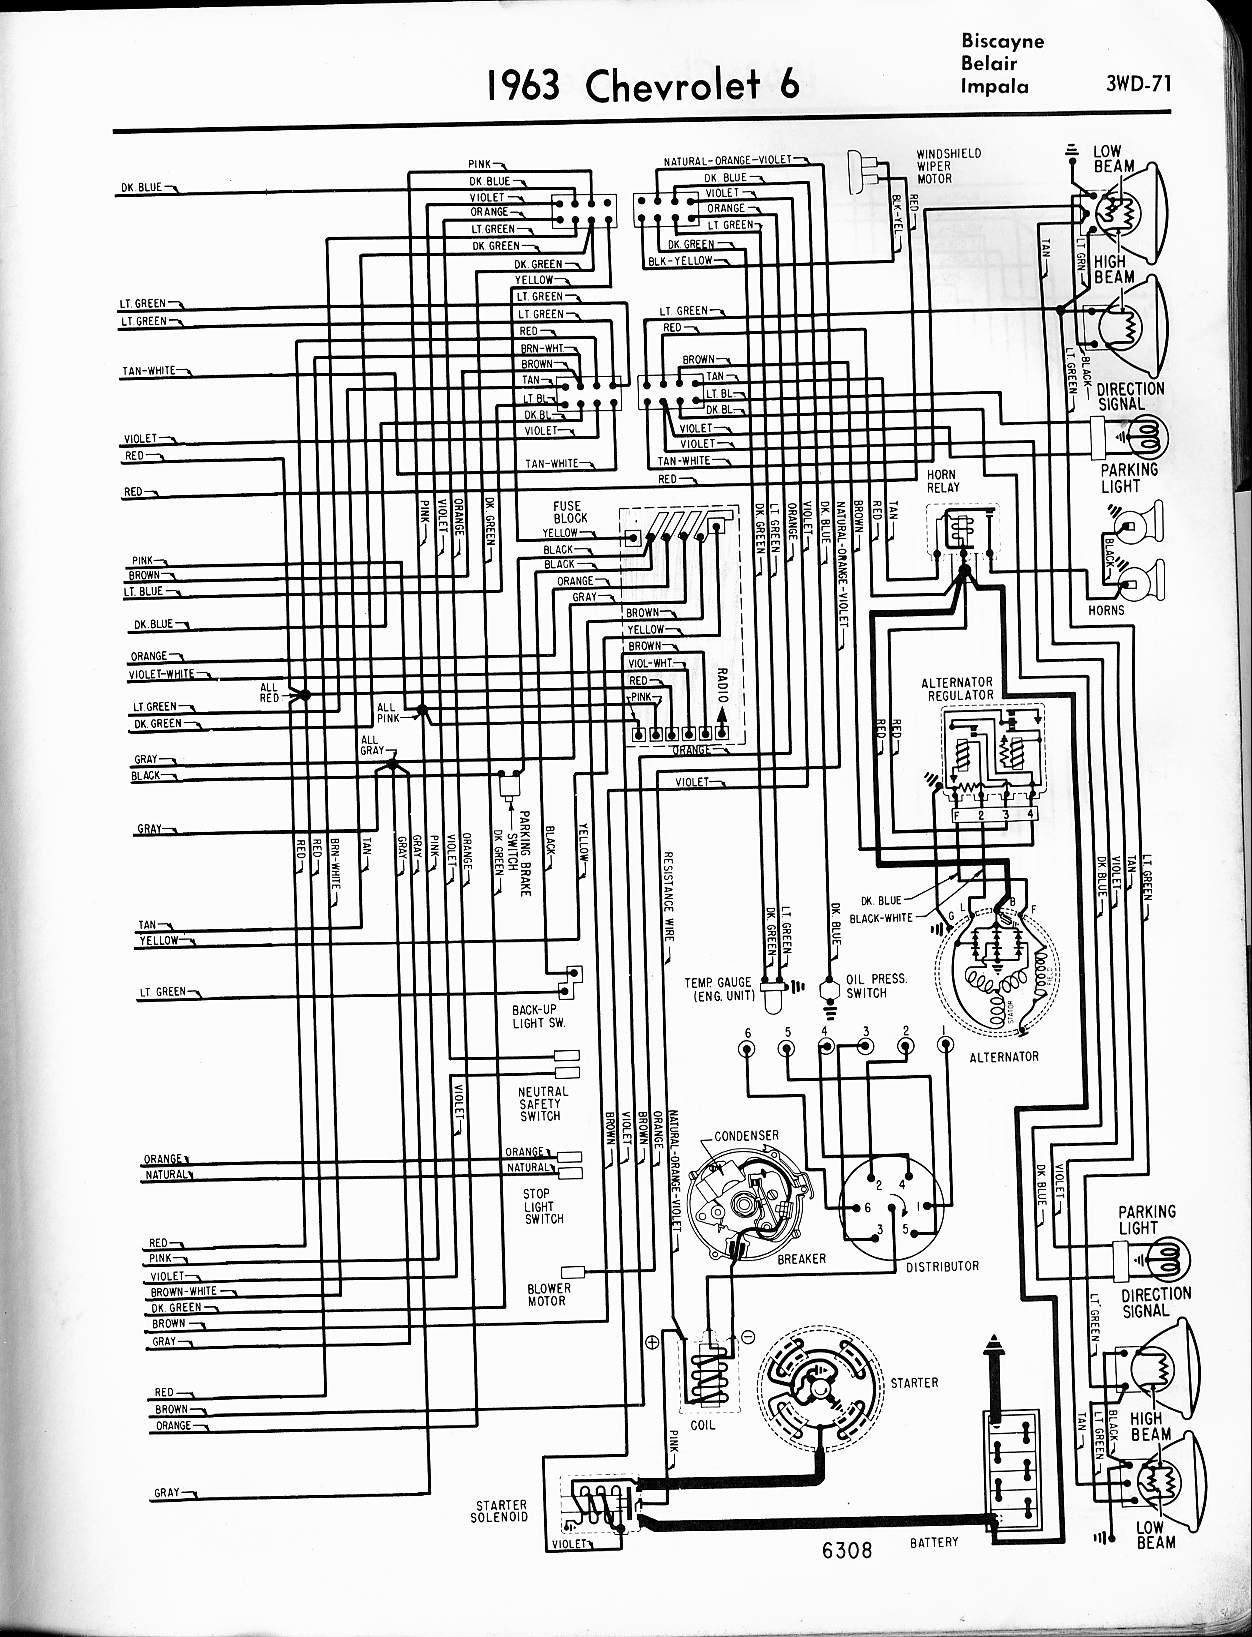 1963 impala wire harness diagram wiring diagram63 impala wiring harness wiring diagram